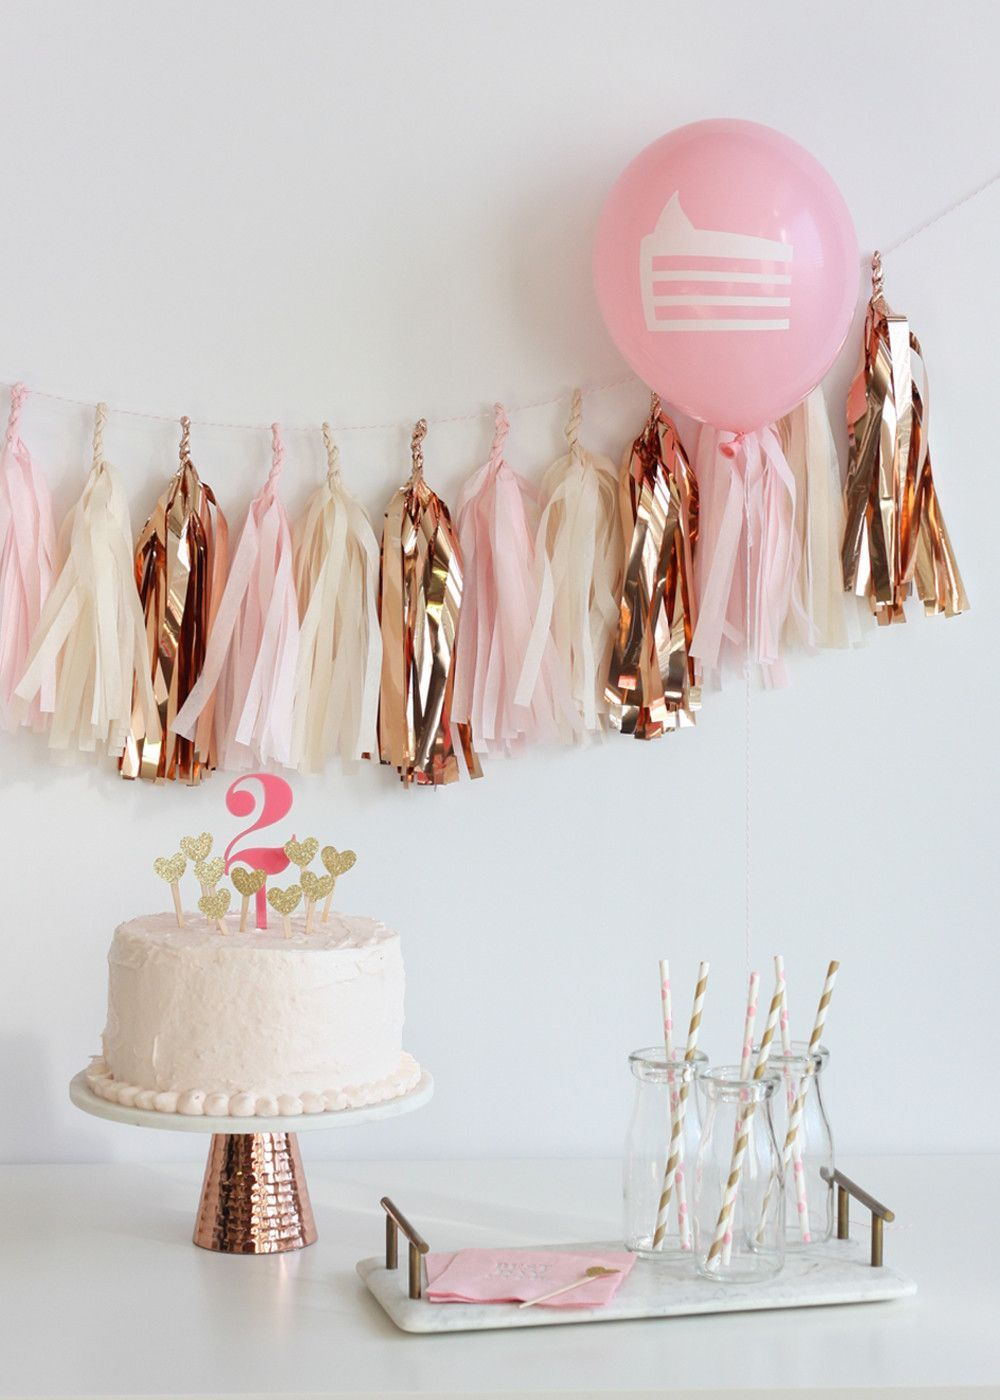 Rose Gold Pink Party Decorations Tissue Tassels And Cake Toppers Mini Heart Balloon